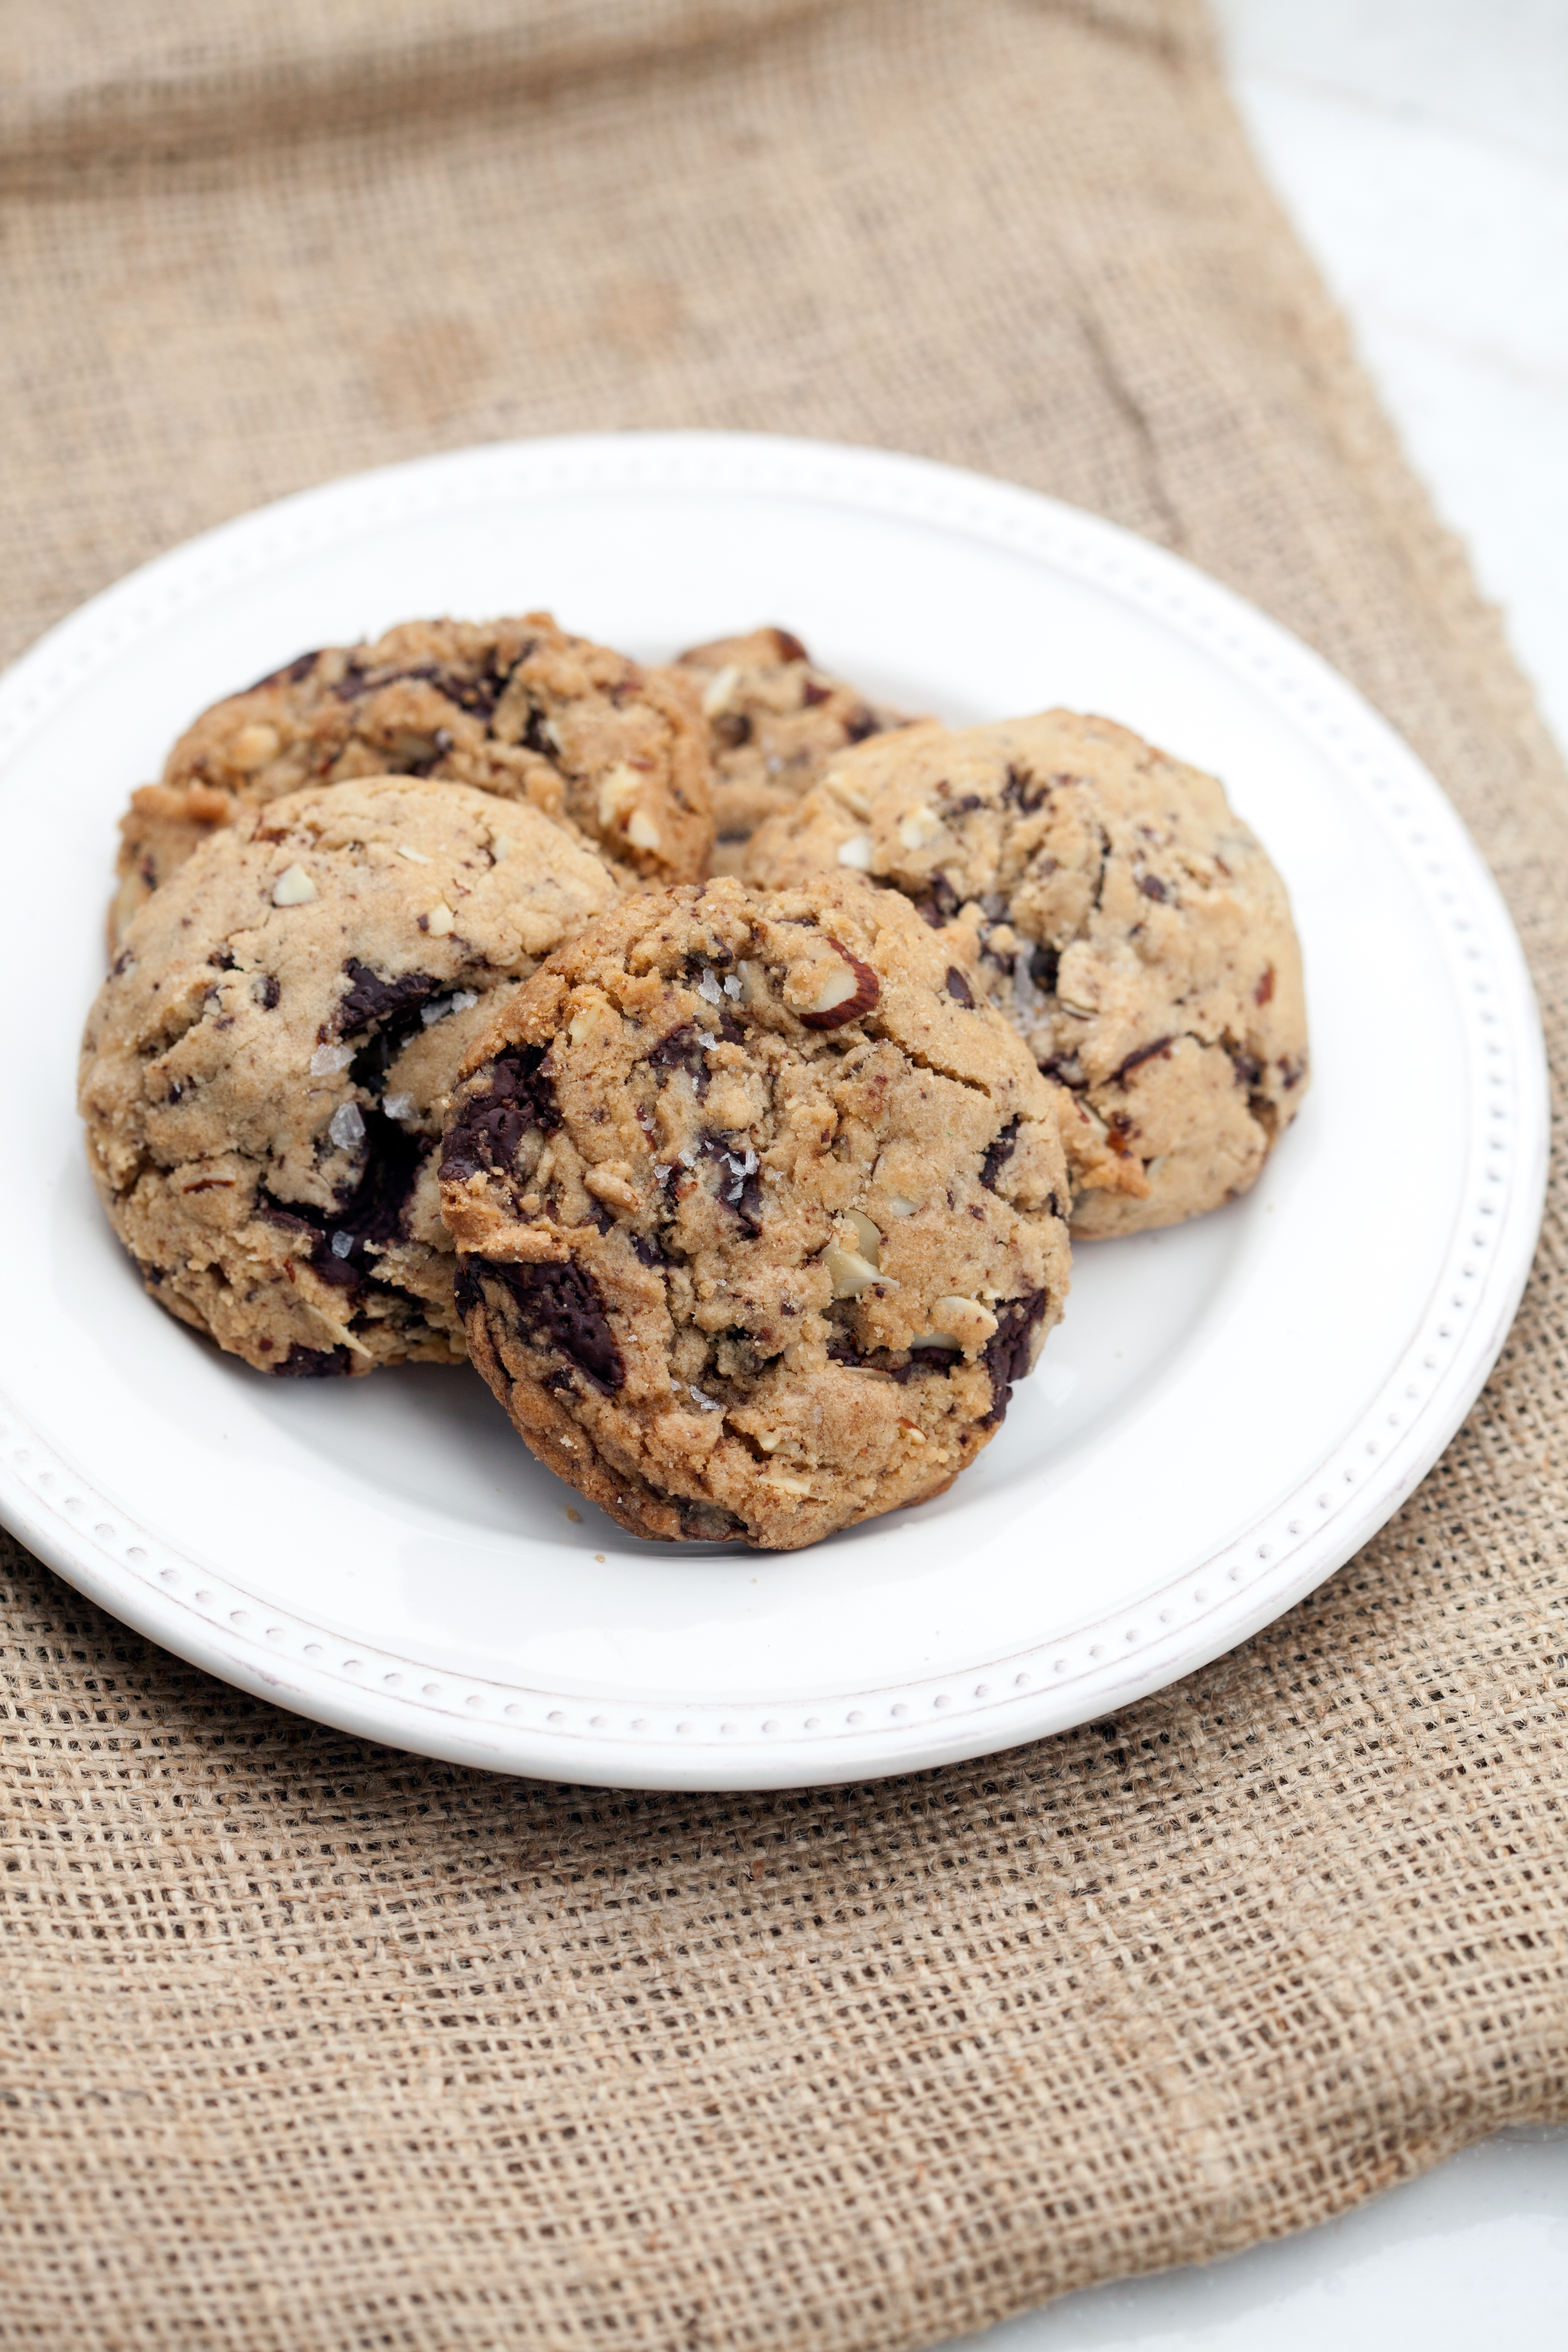 Tasty and comforting chocolate chip cookies with almonds, that just happen to be vegan (and a side of sorrow and anger at recent events) | spachethespatula.com #recipe